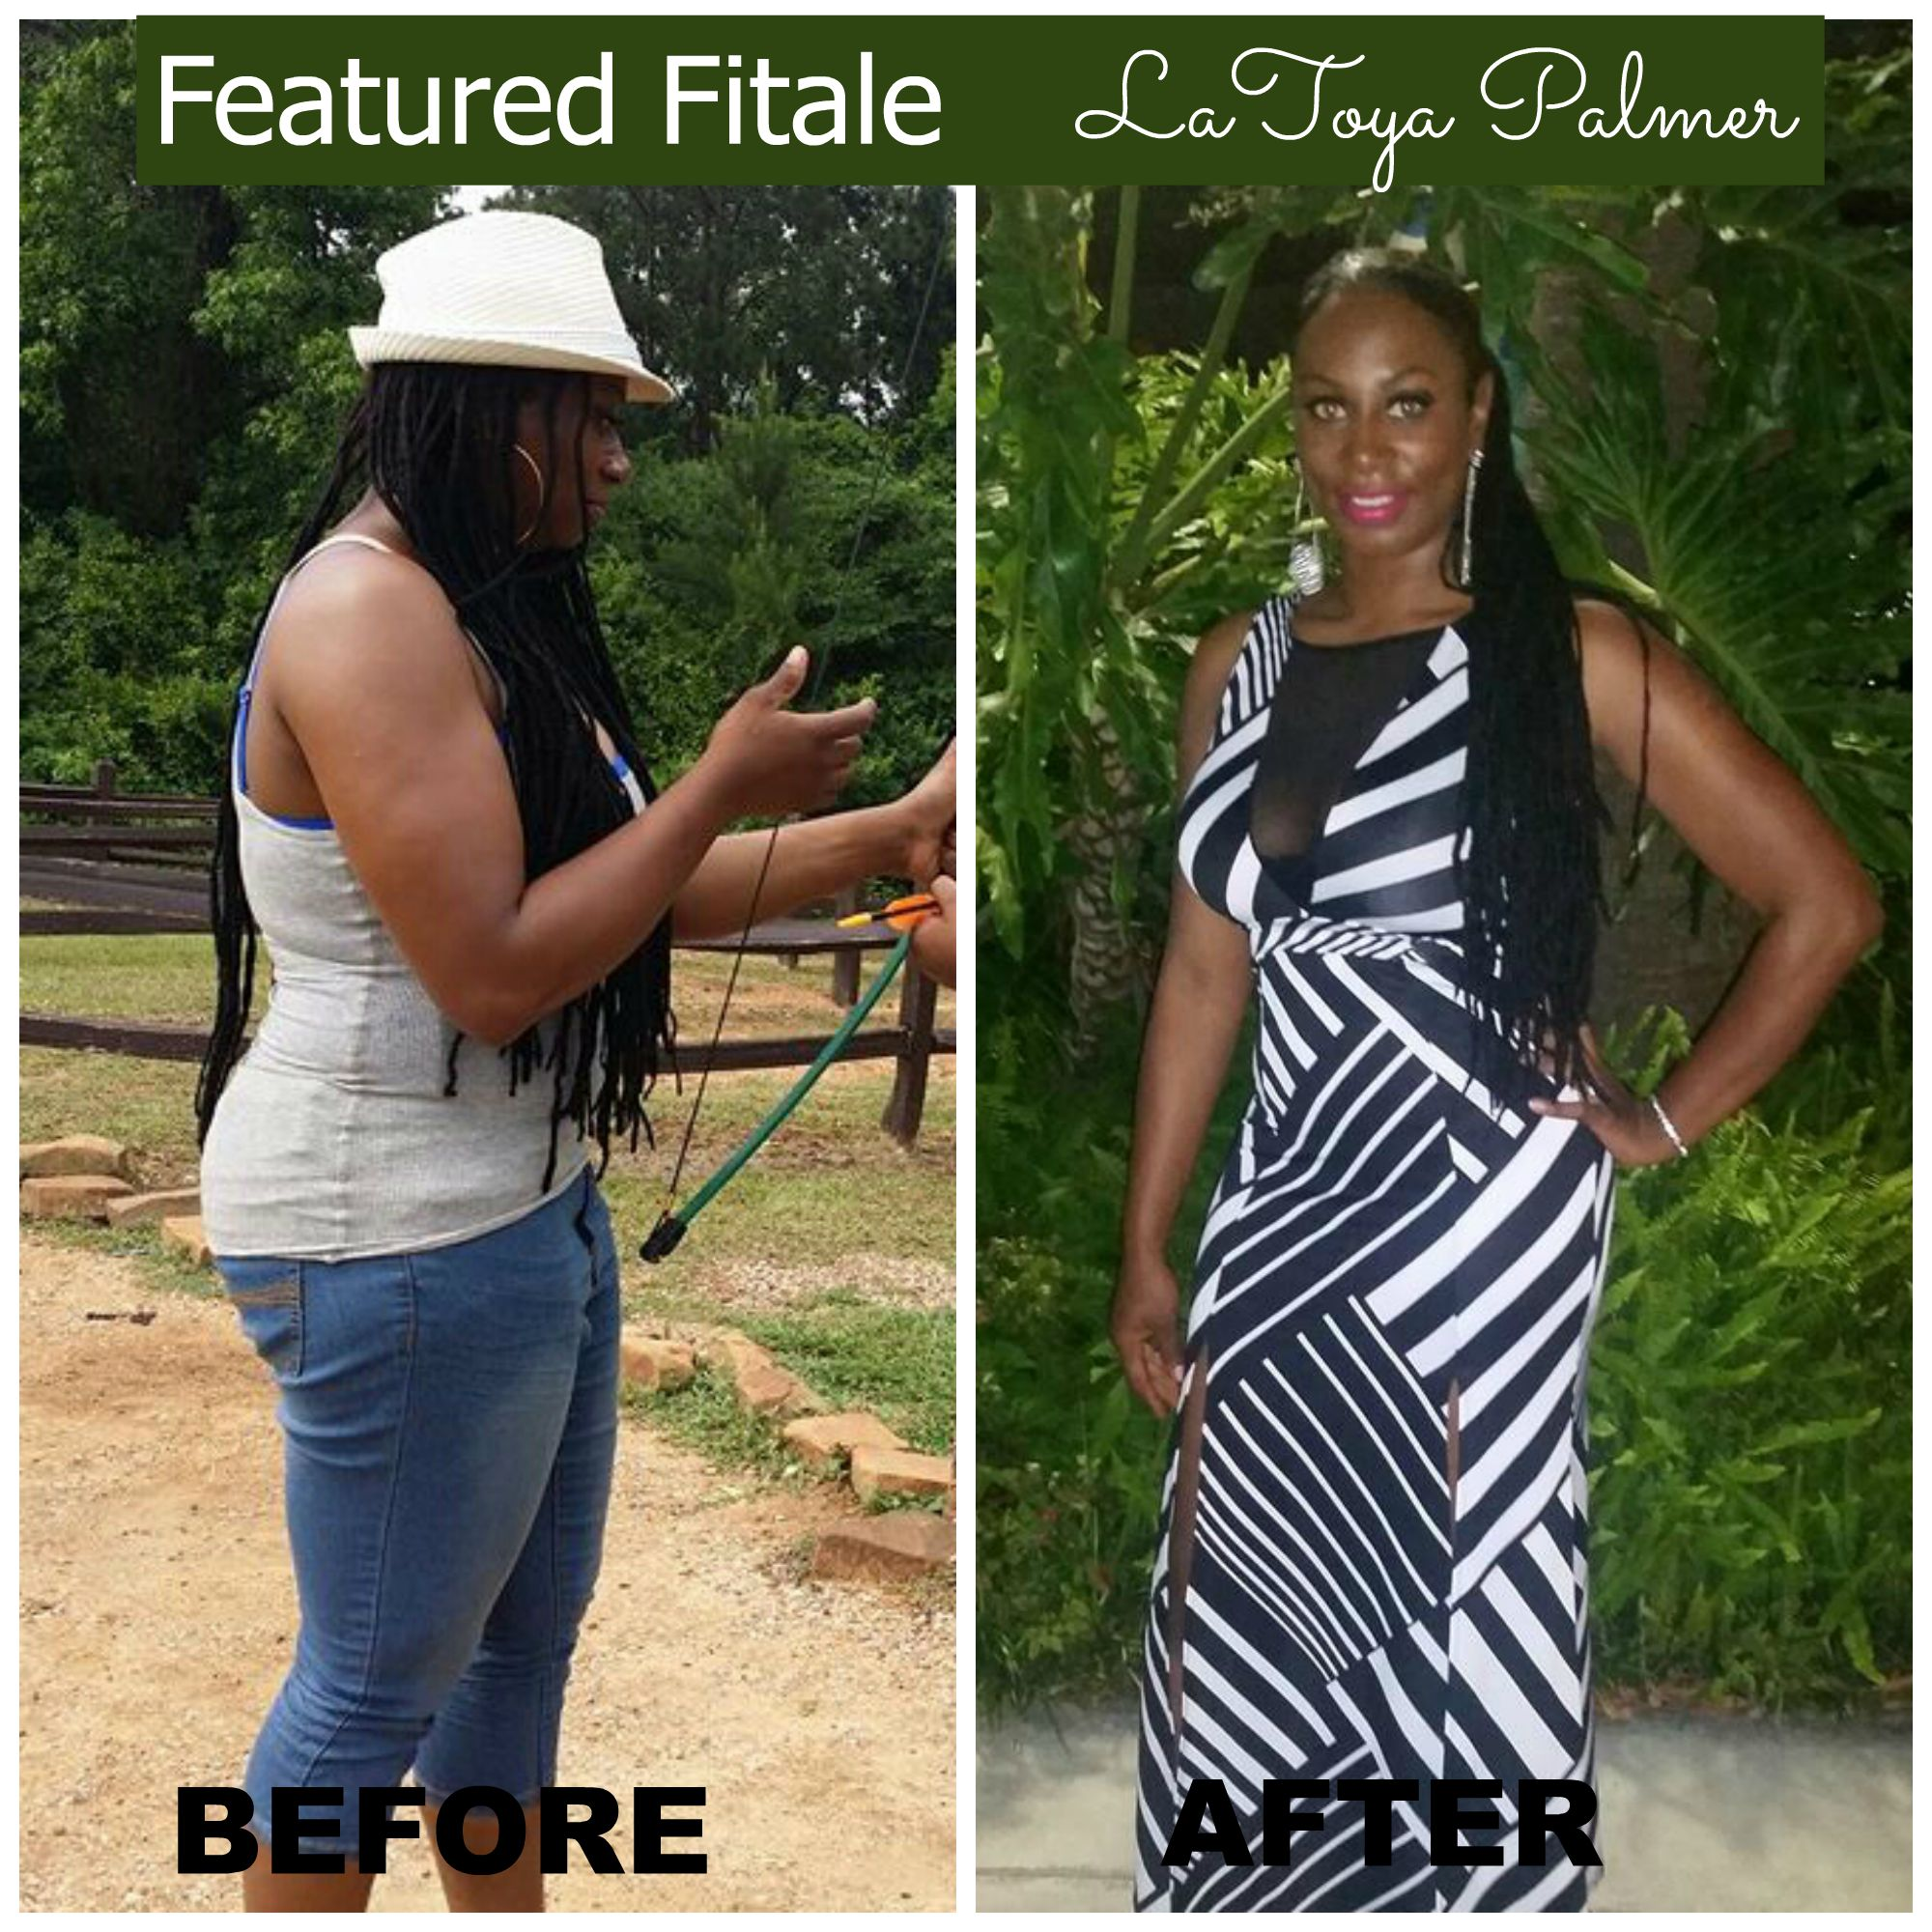 Featured Fitale LaToya Palmer